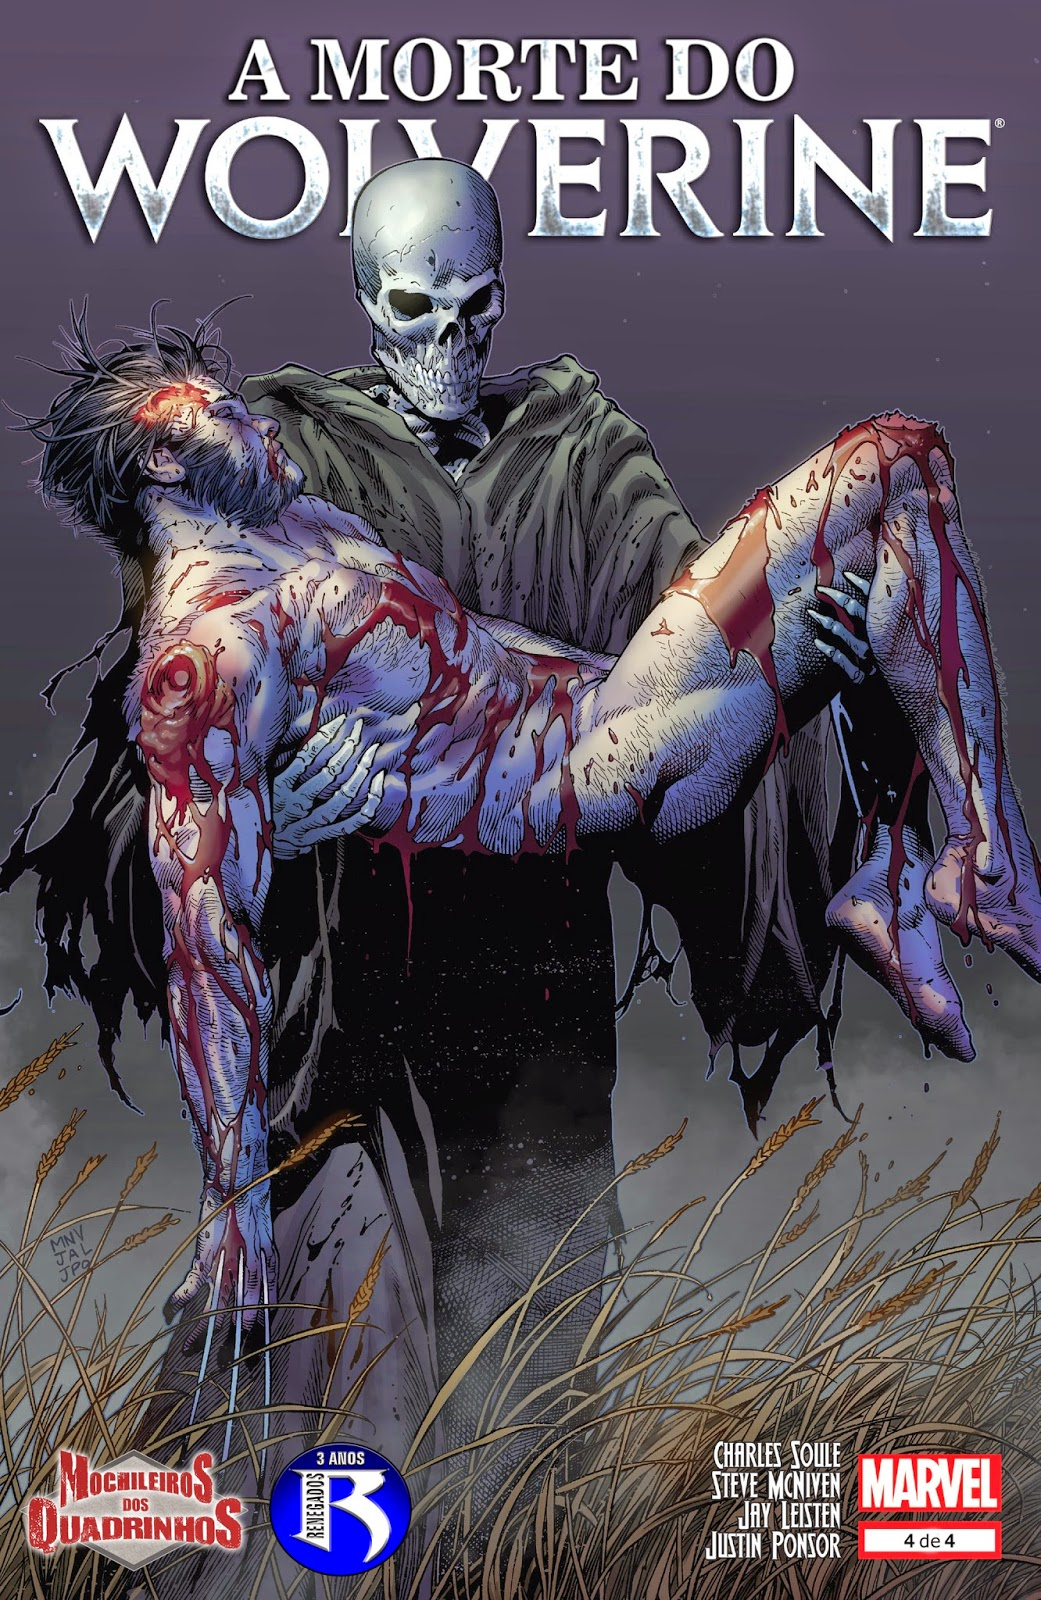 http://renegadoscomics.blogspot.com.br/2014/10/a-morte-do-wolverine-04-2014.html